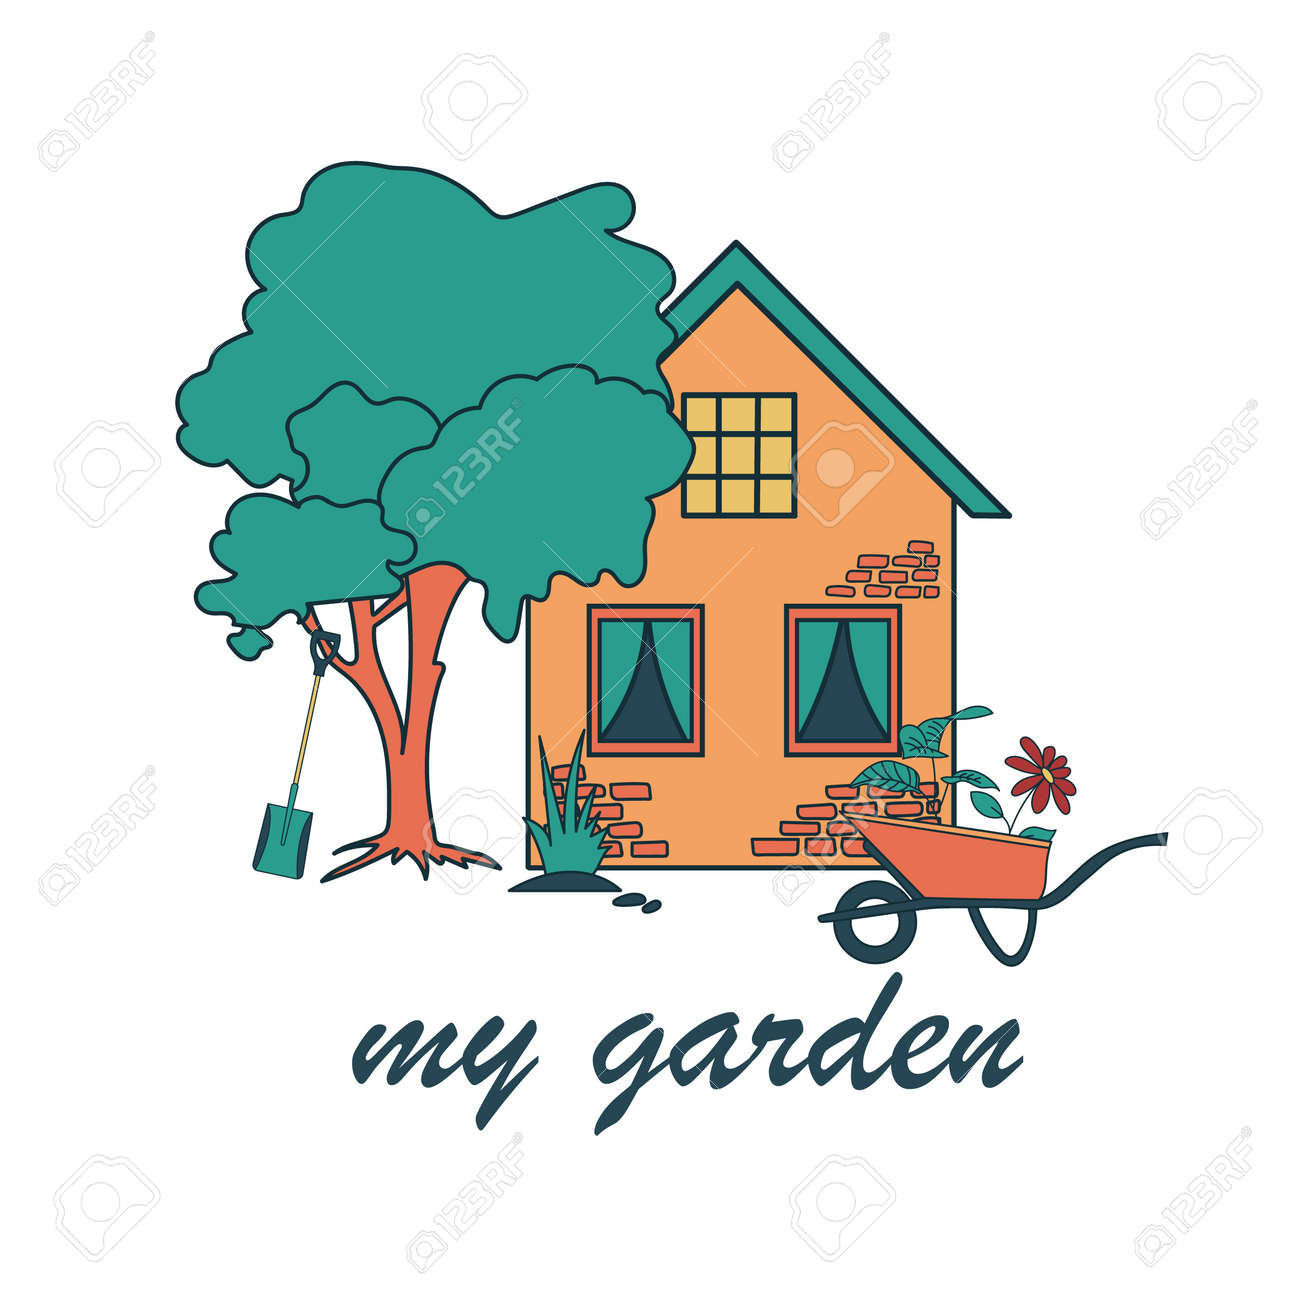 Vector illustration with home and text My garden. Cute garden house with tree. Flat illustration on white background. - 169107937